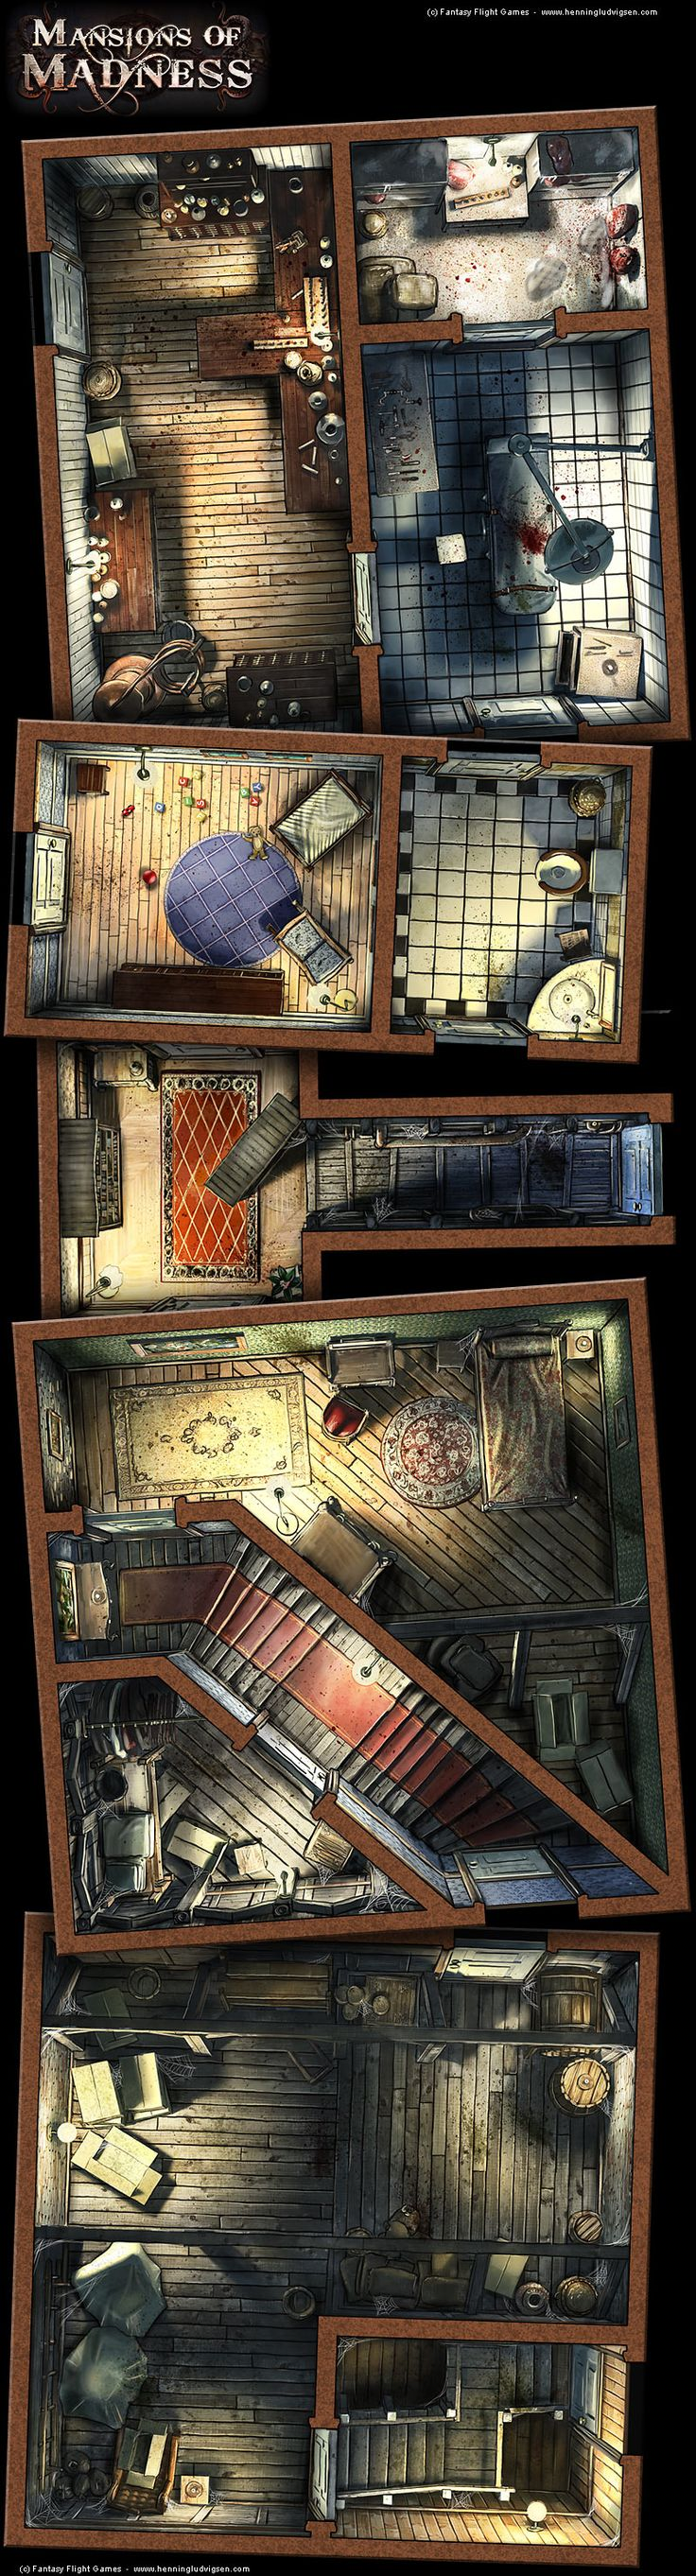 Mansions of Madness, details 2 by *henning on deviantART